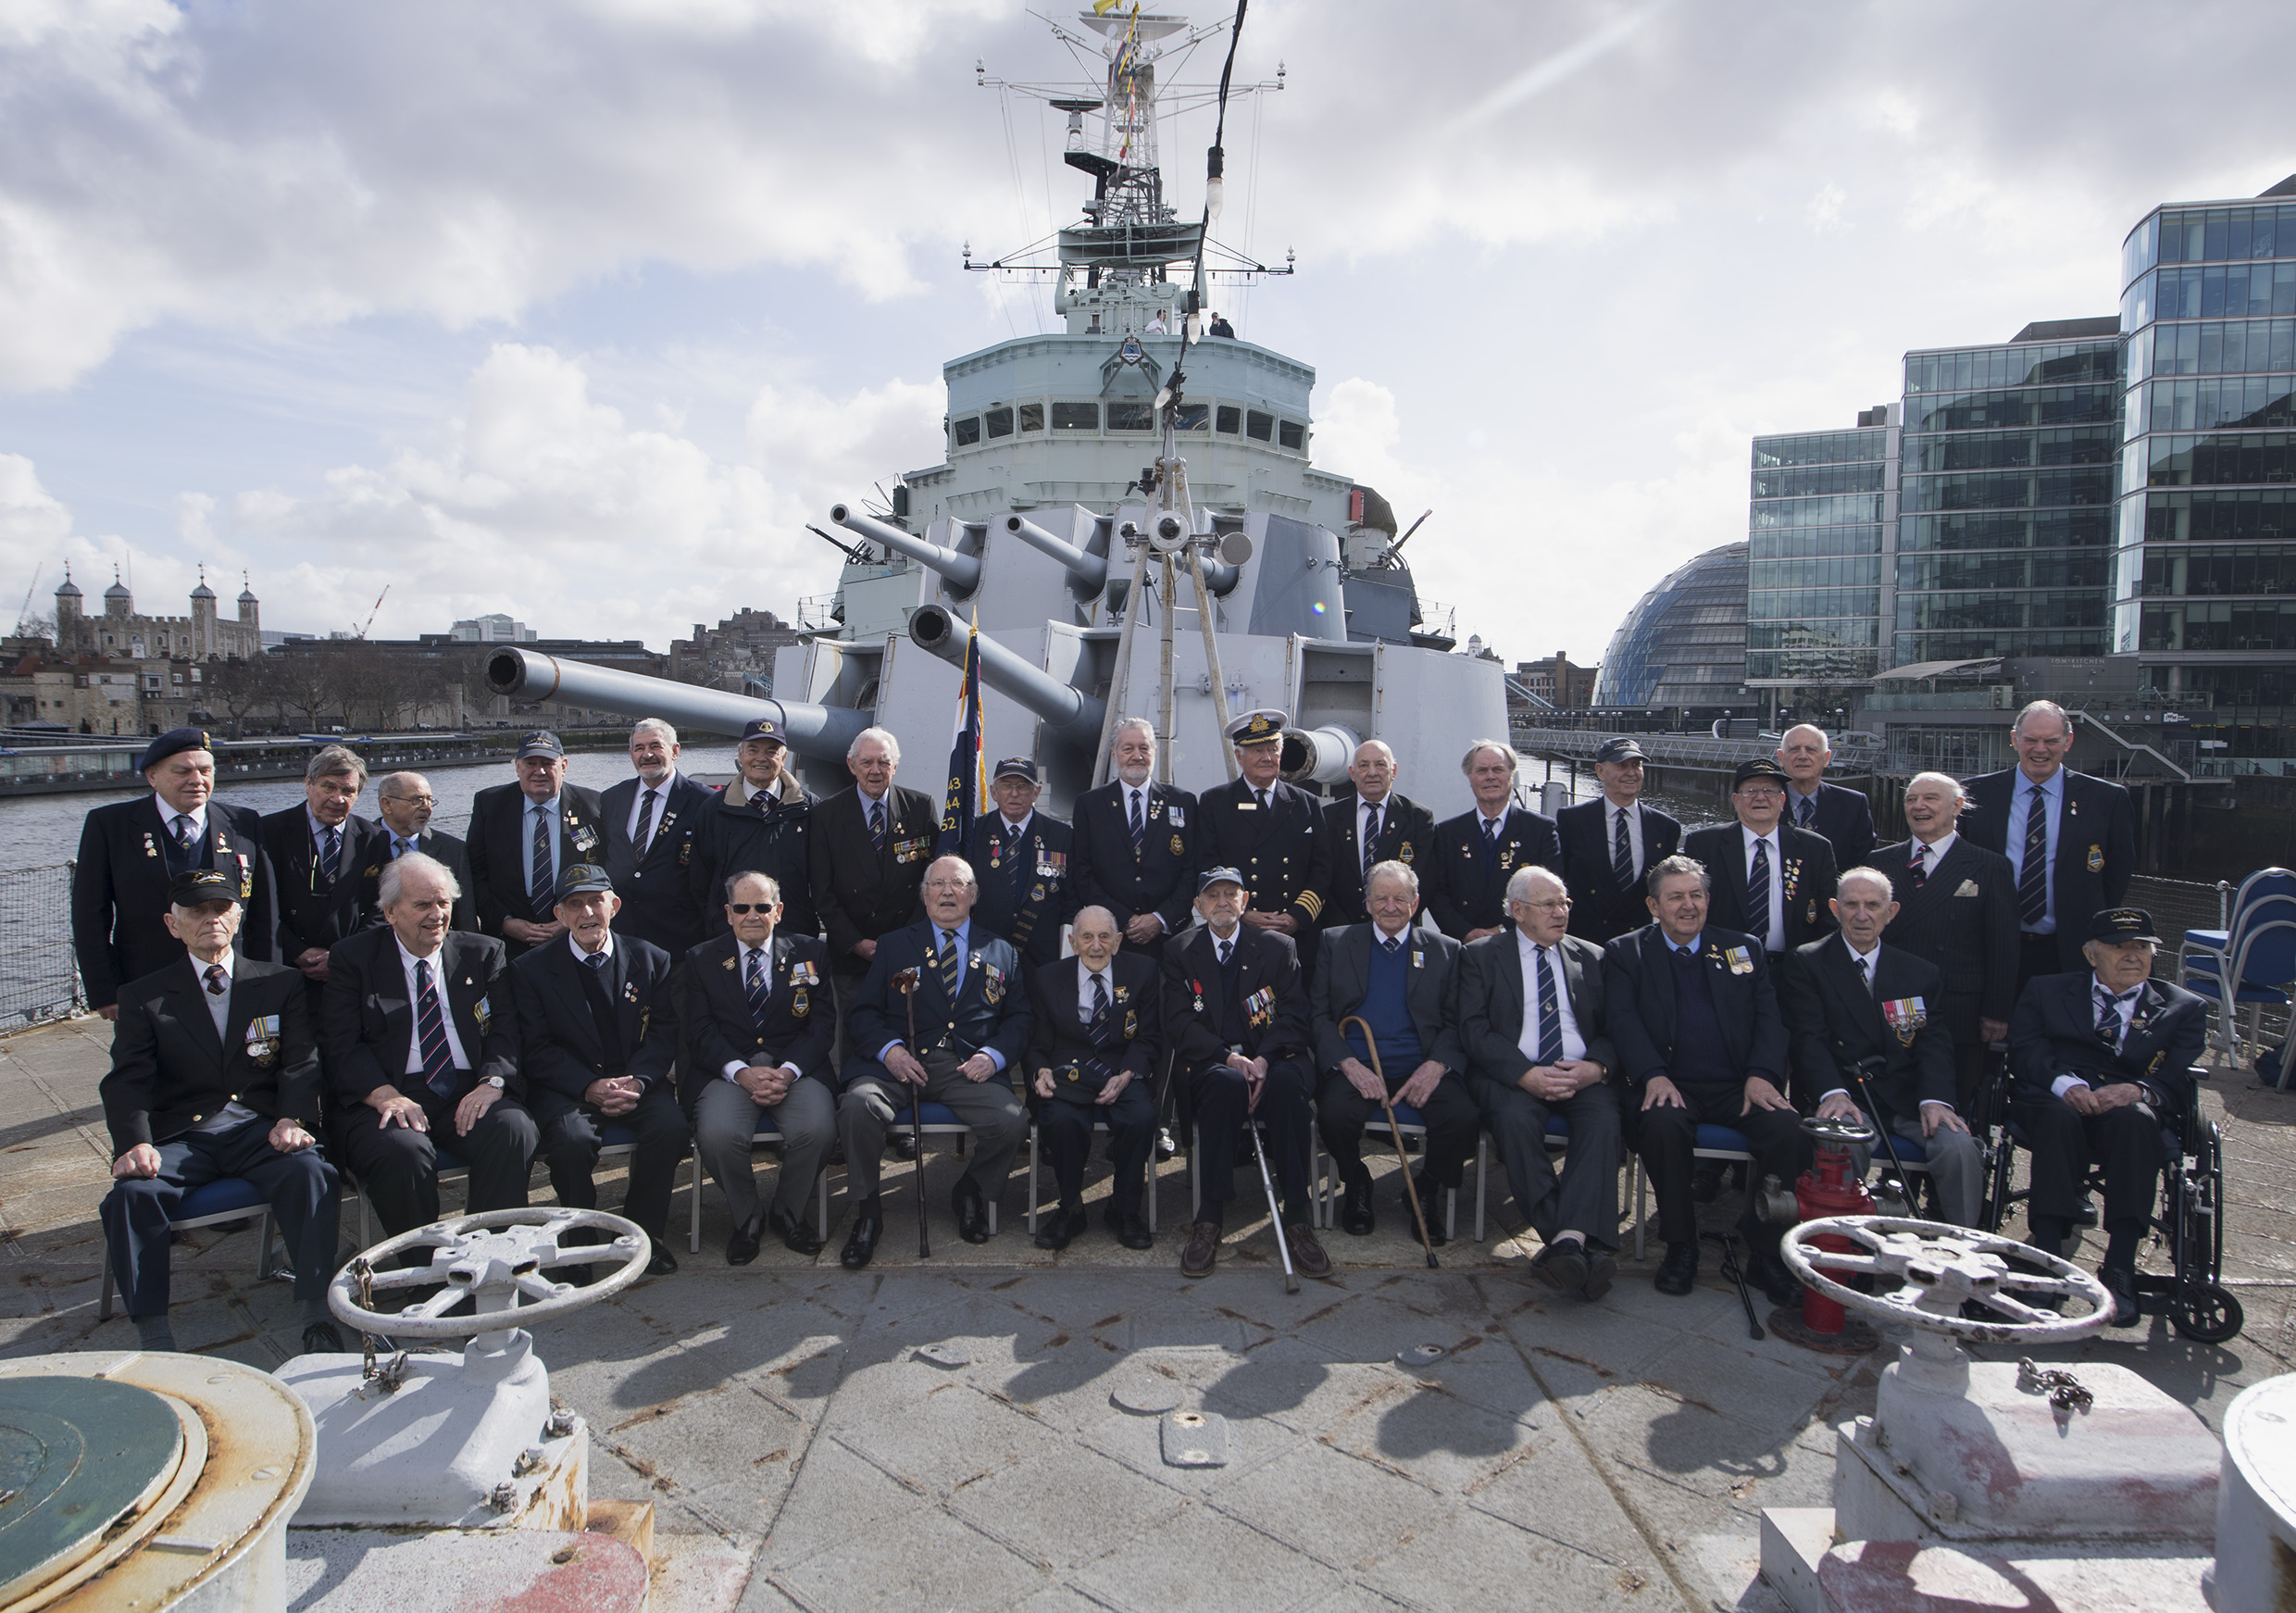 Veterans of HMS Belfast pose for photos on board, March 16 2018